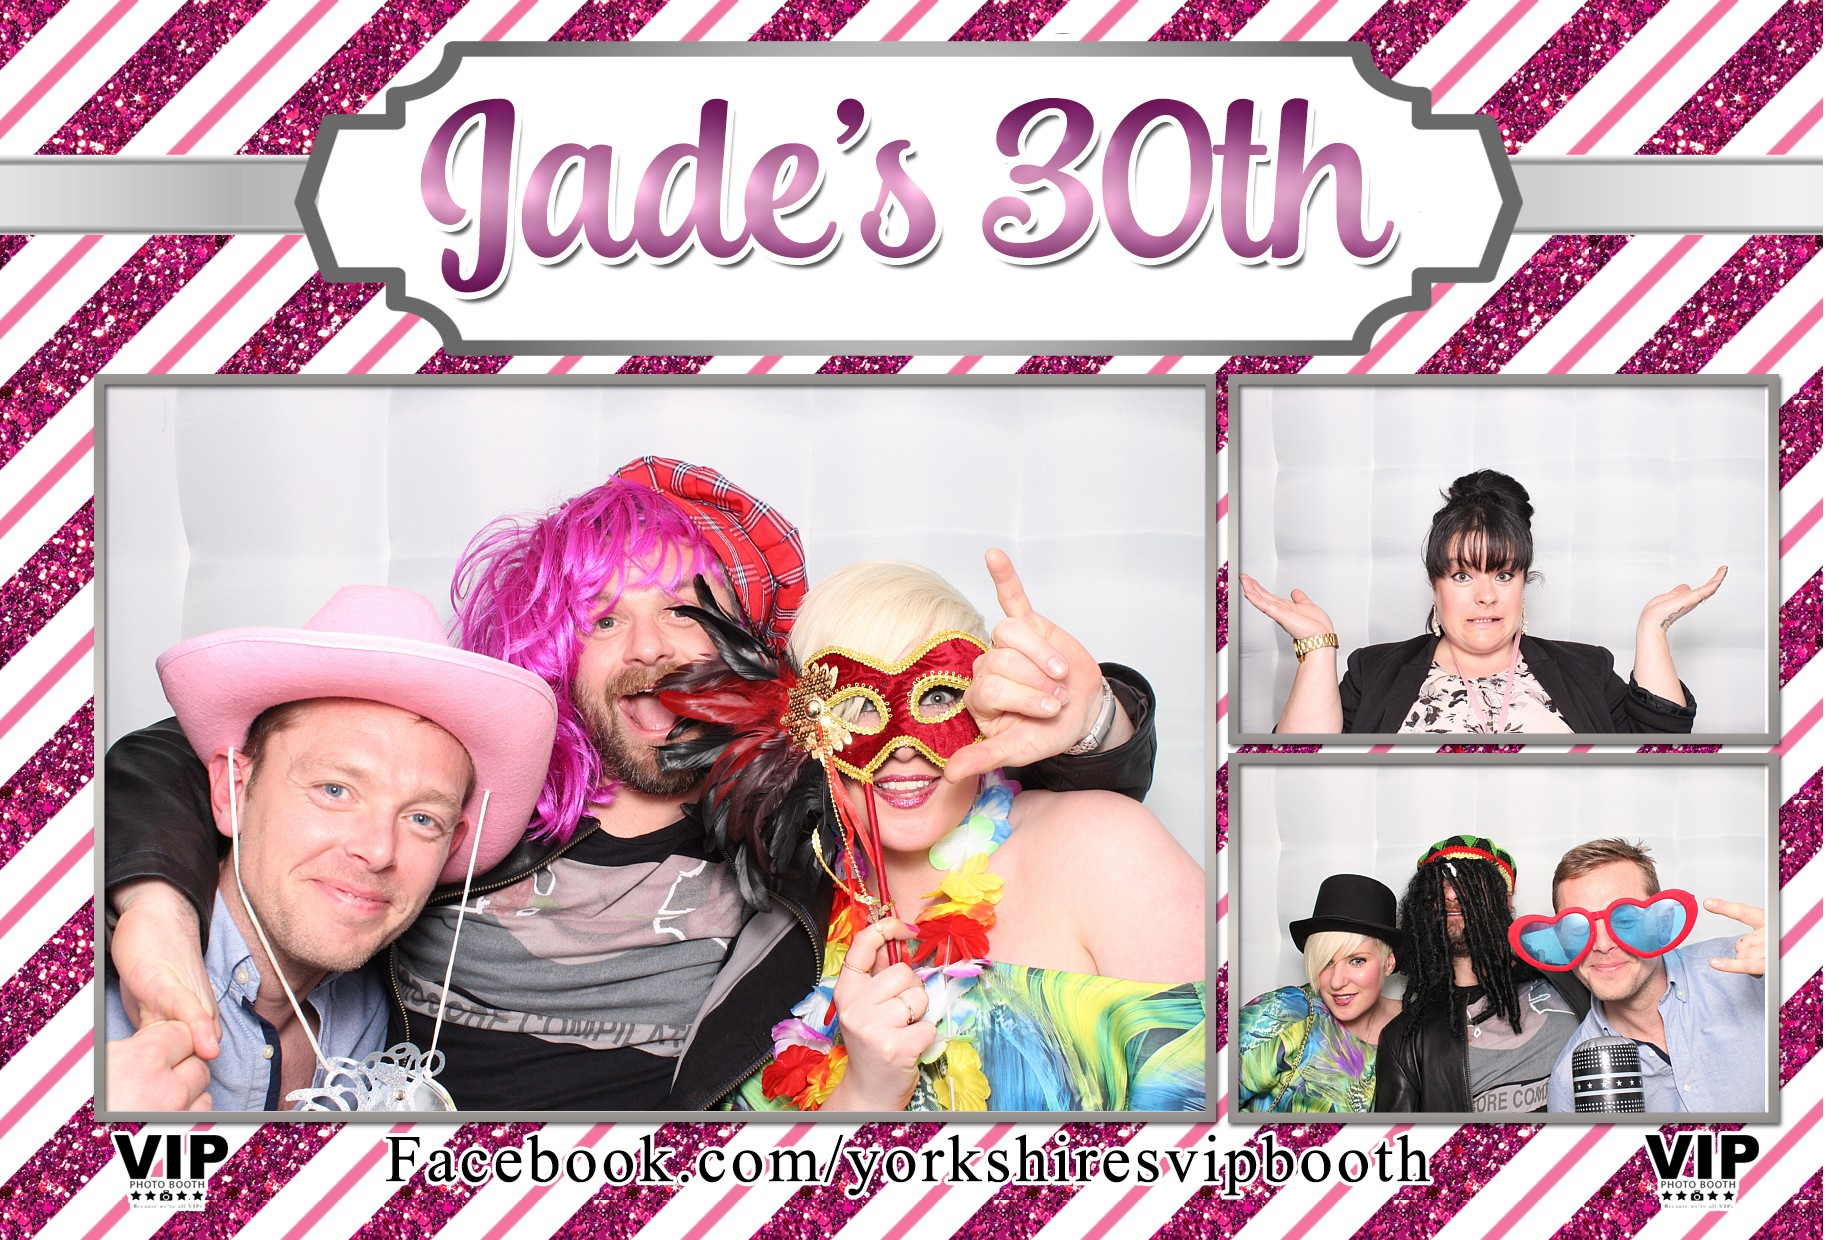 Jade's 30th Birthday - Photo Booth